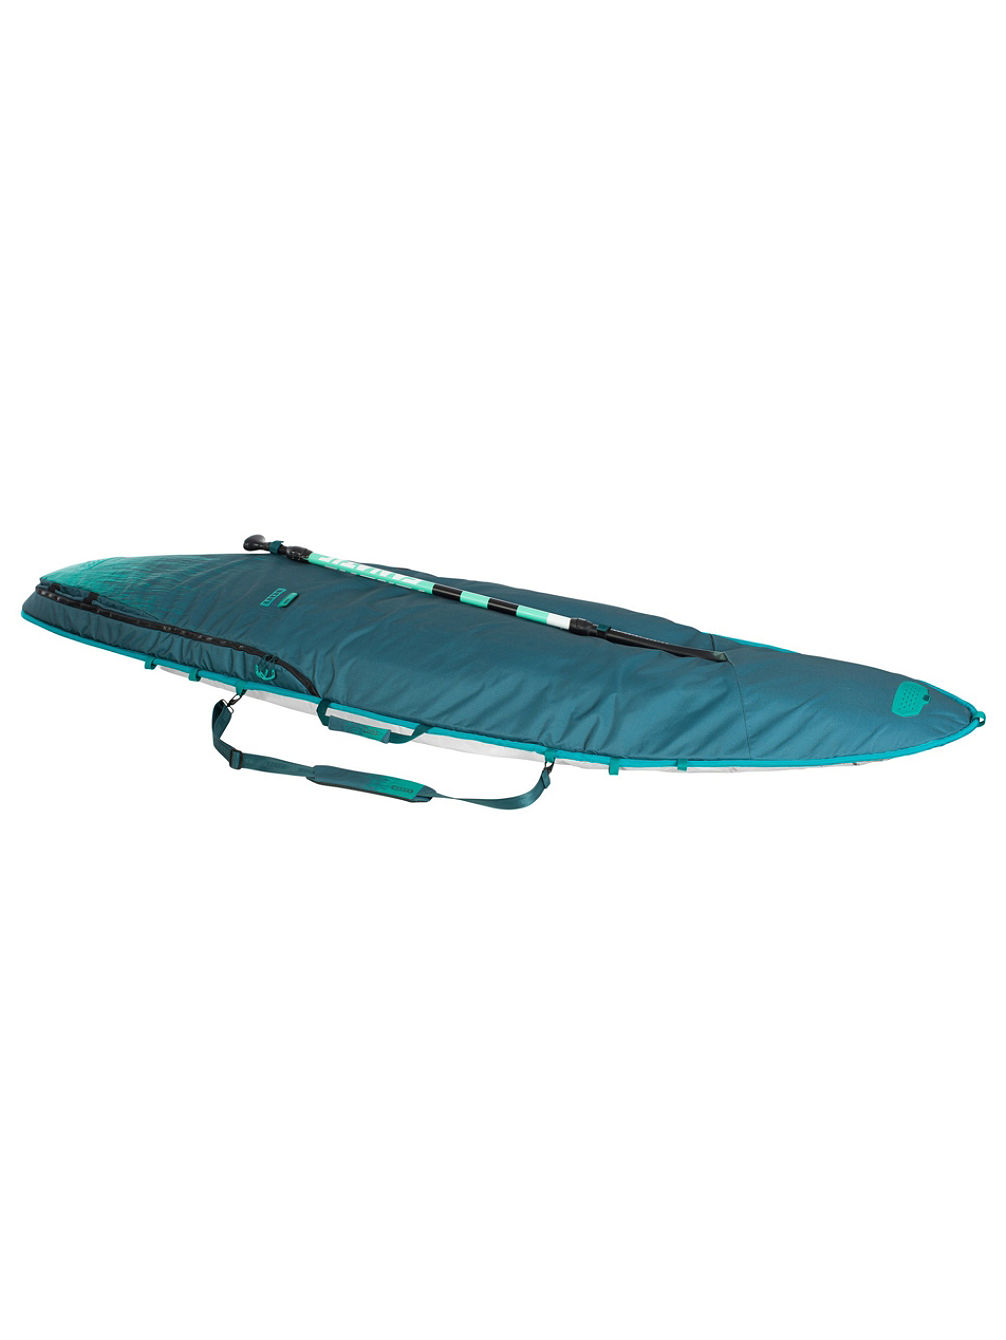 SUP TEC 10'6x33'' Surfboard Bag